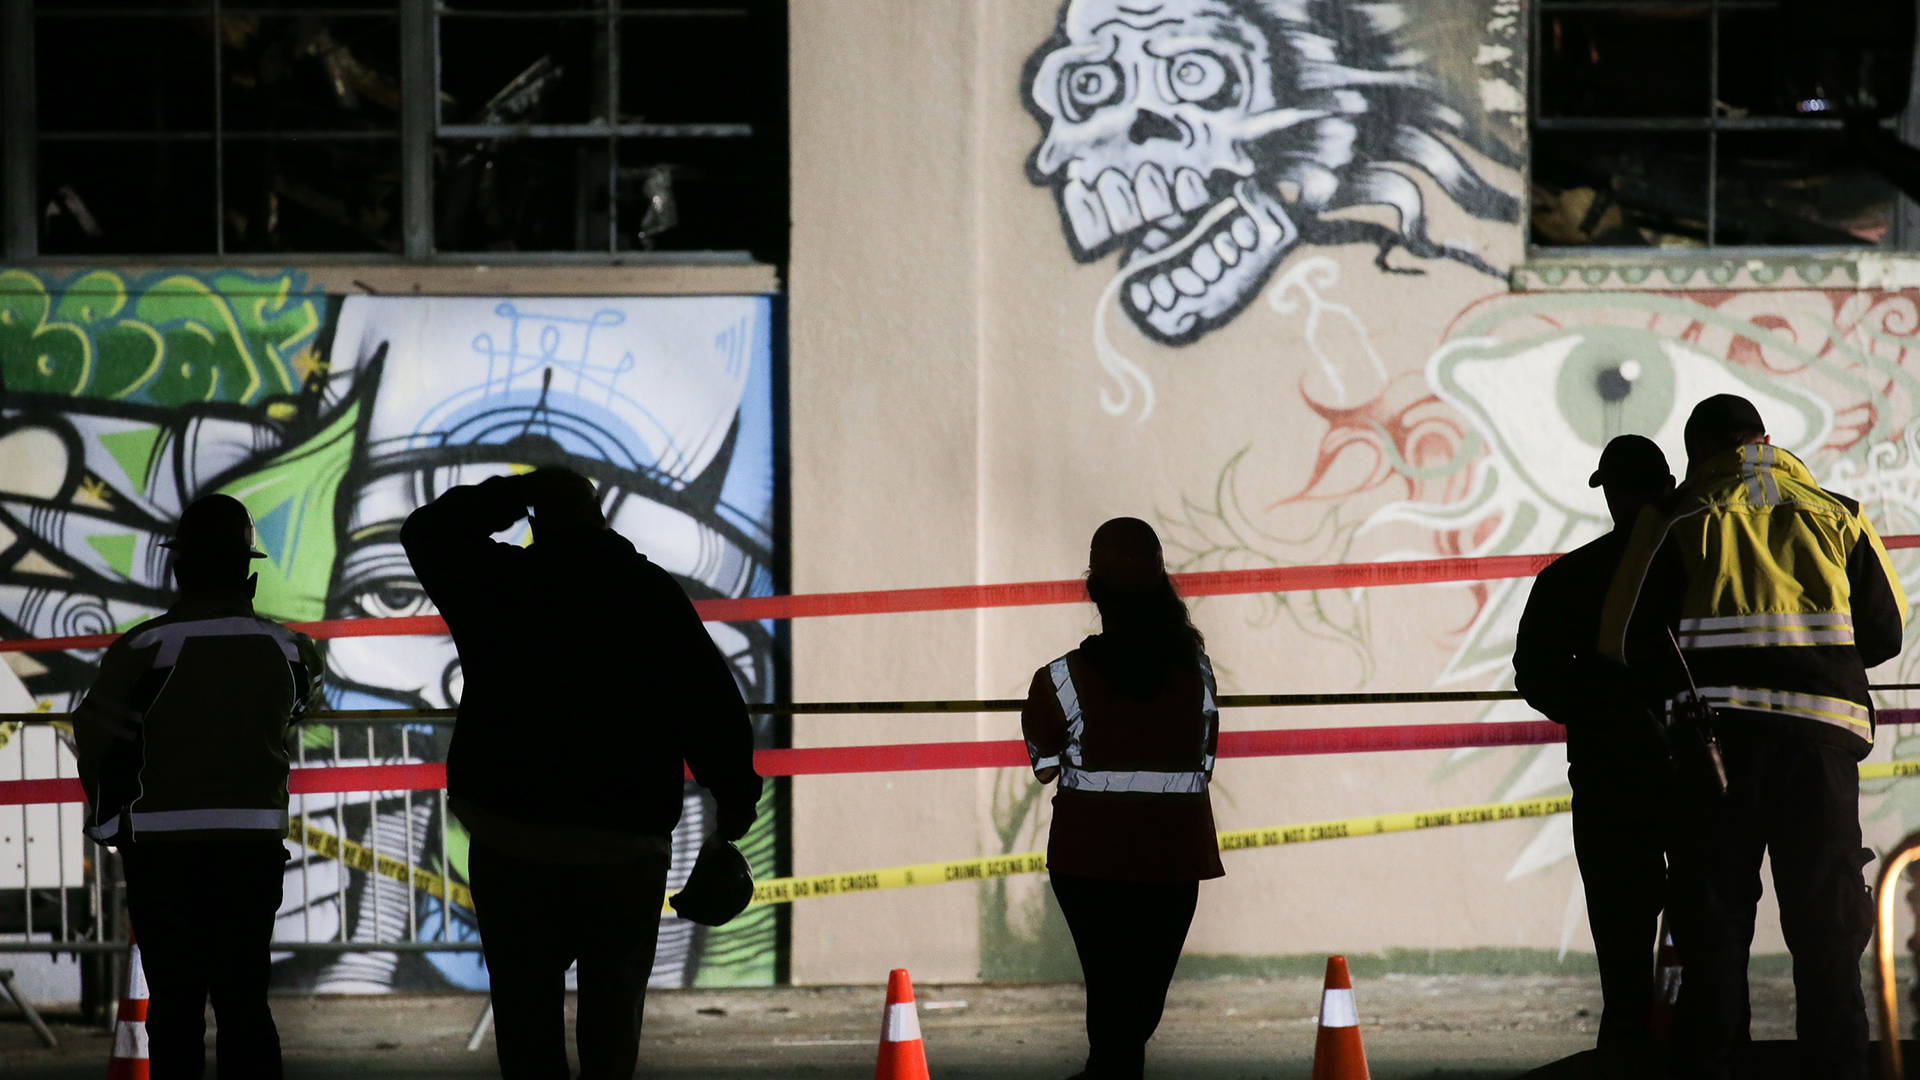 Workers and emergency responders look at a warehouse in which a fire claimed the lives of at least thirty-six people on Dec. 5, 2016 in Oakland, California.